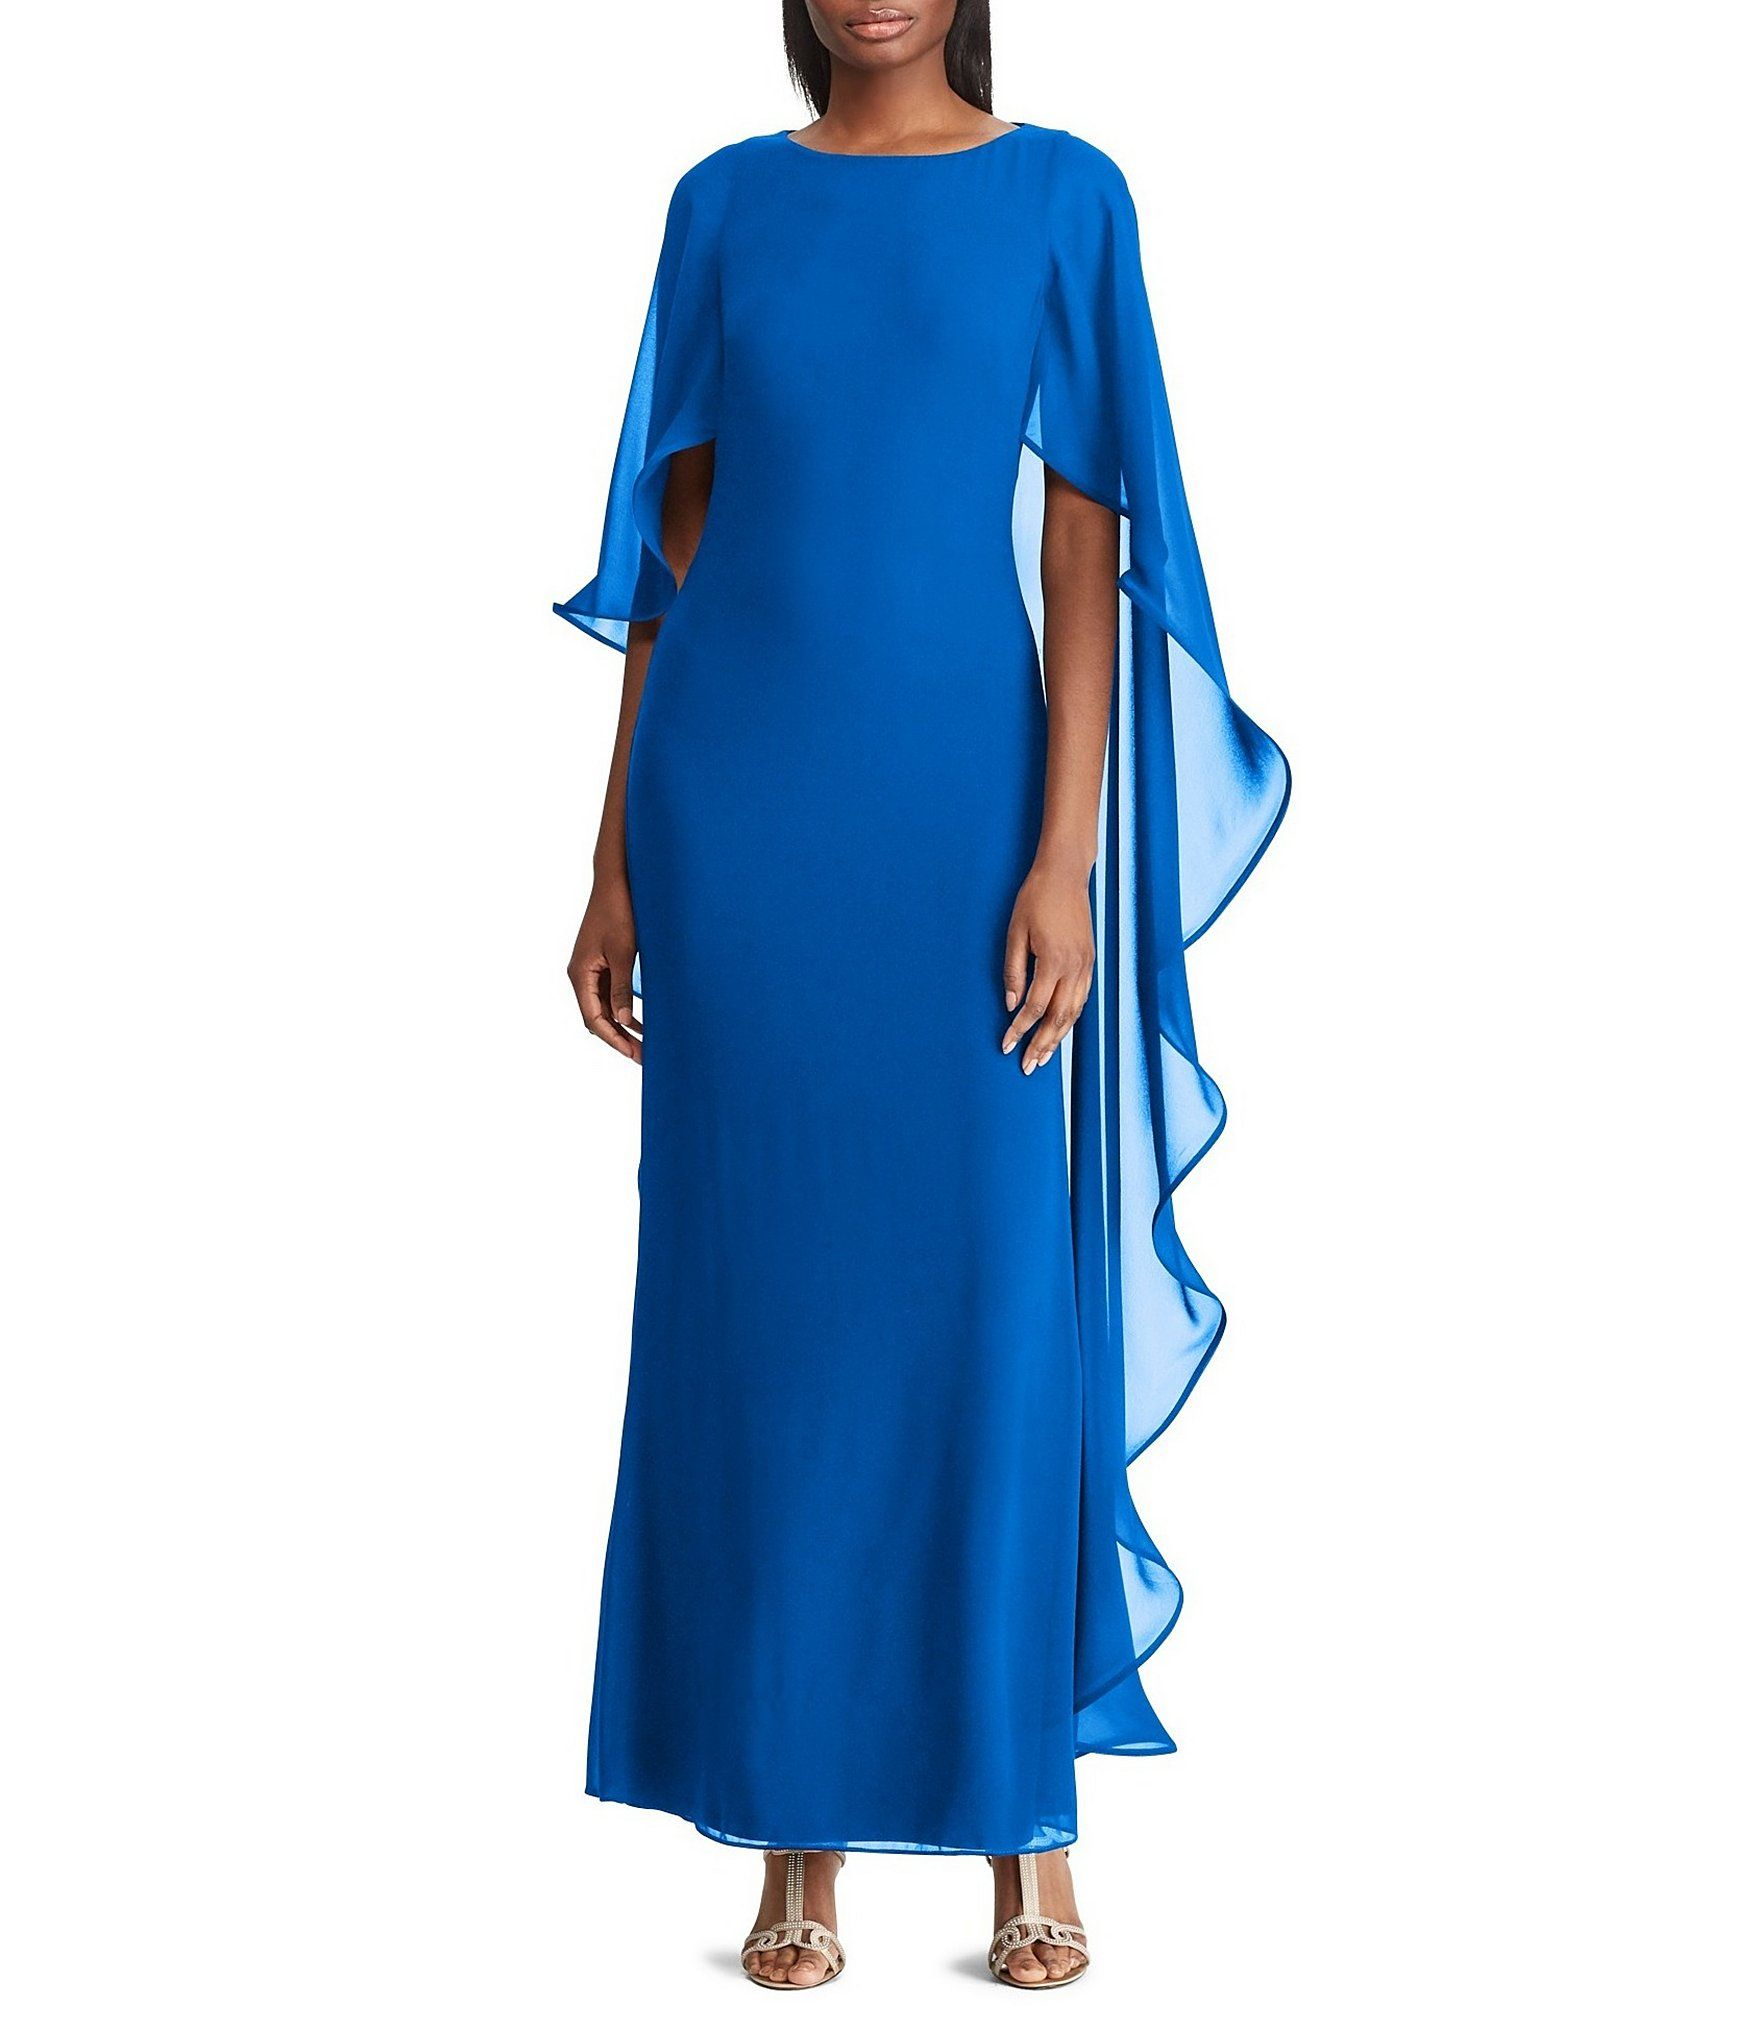 e73340557d4d Shop for Lauren Ralph Lauren Cape Overlay Georgette Gown at Dillards.com.  Visit Dillards